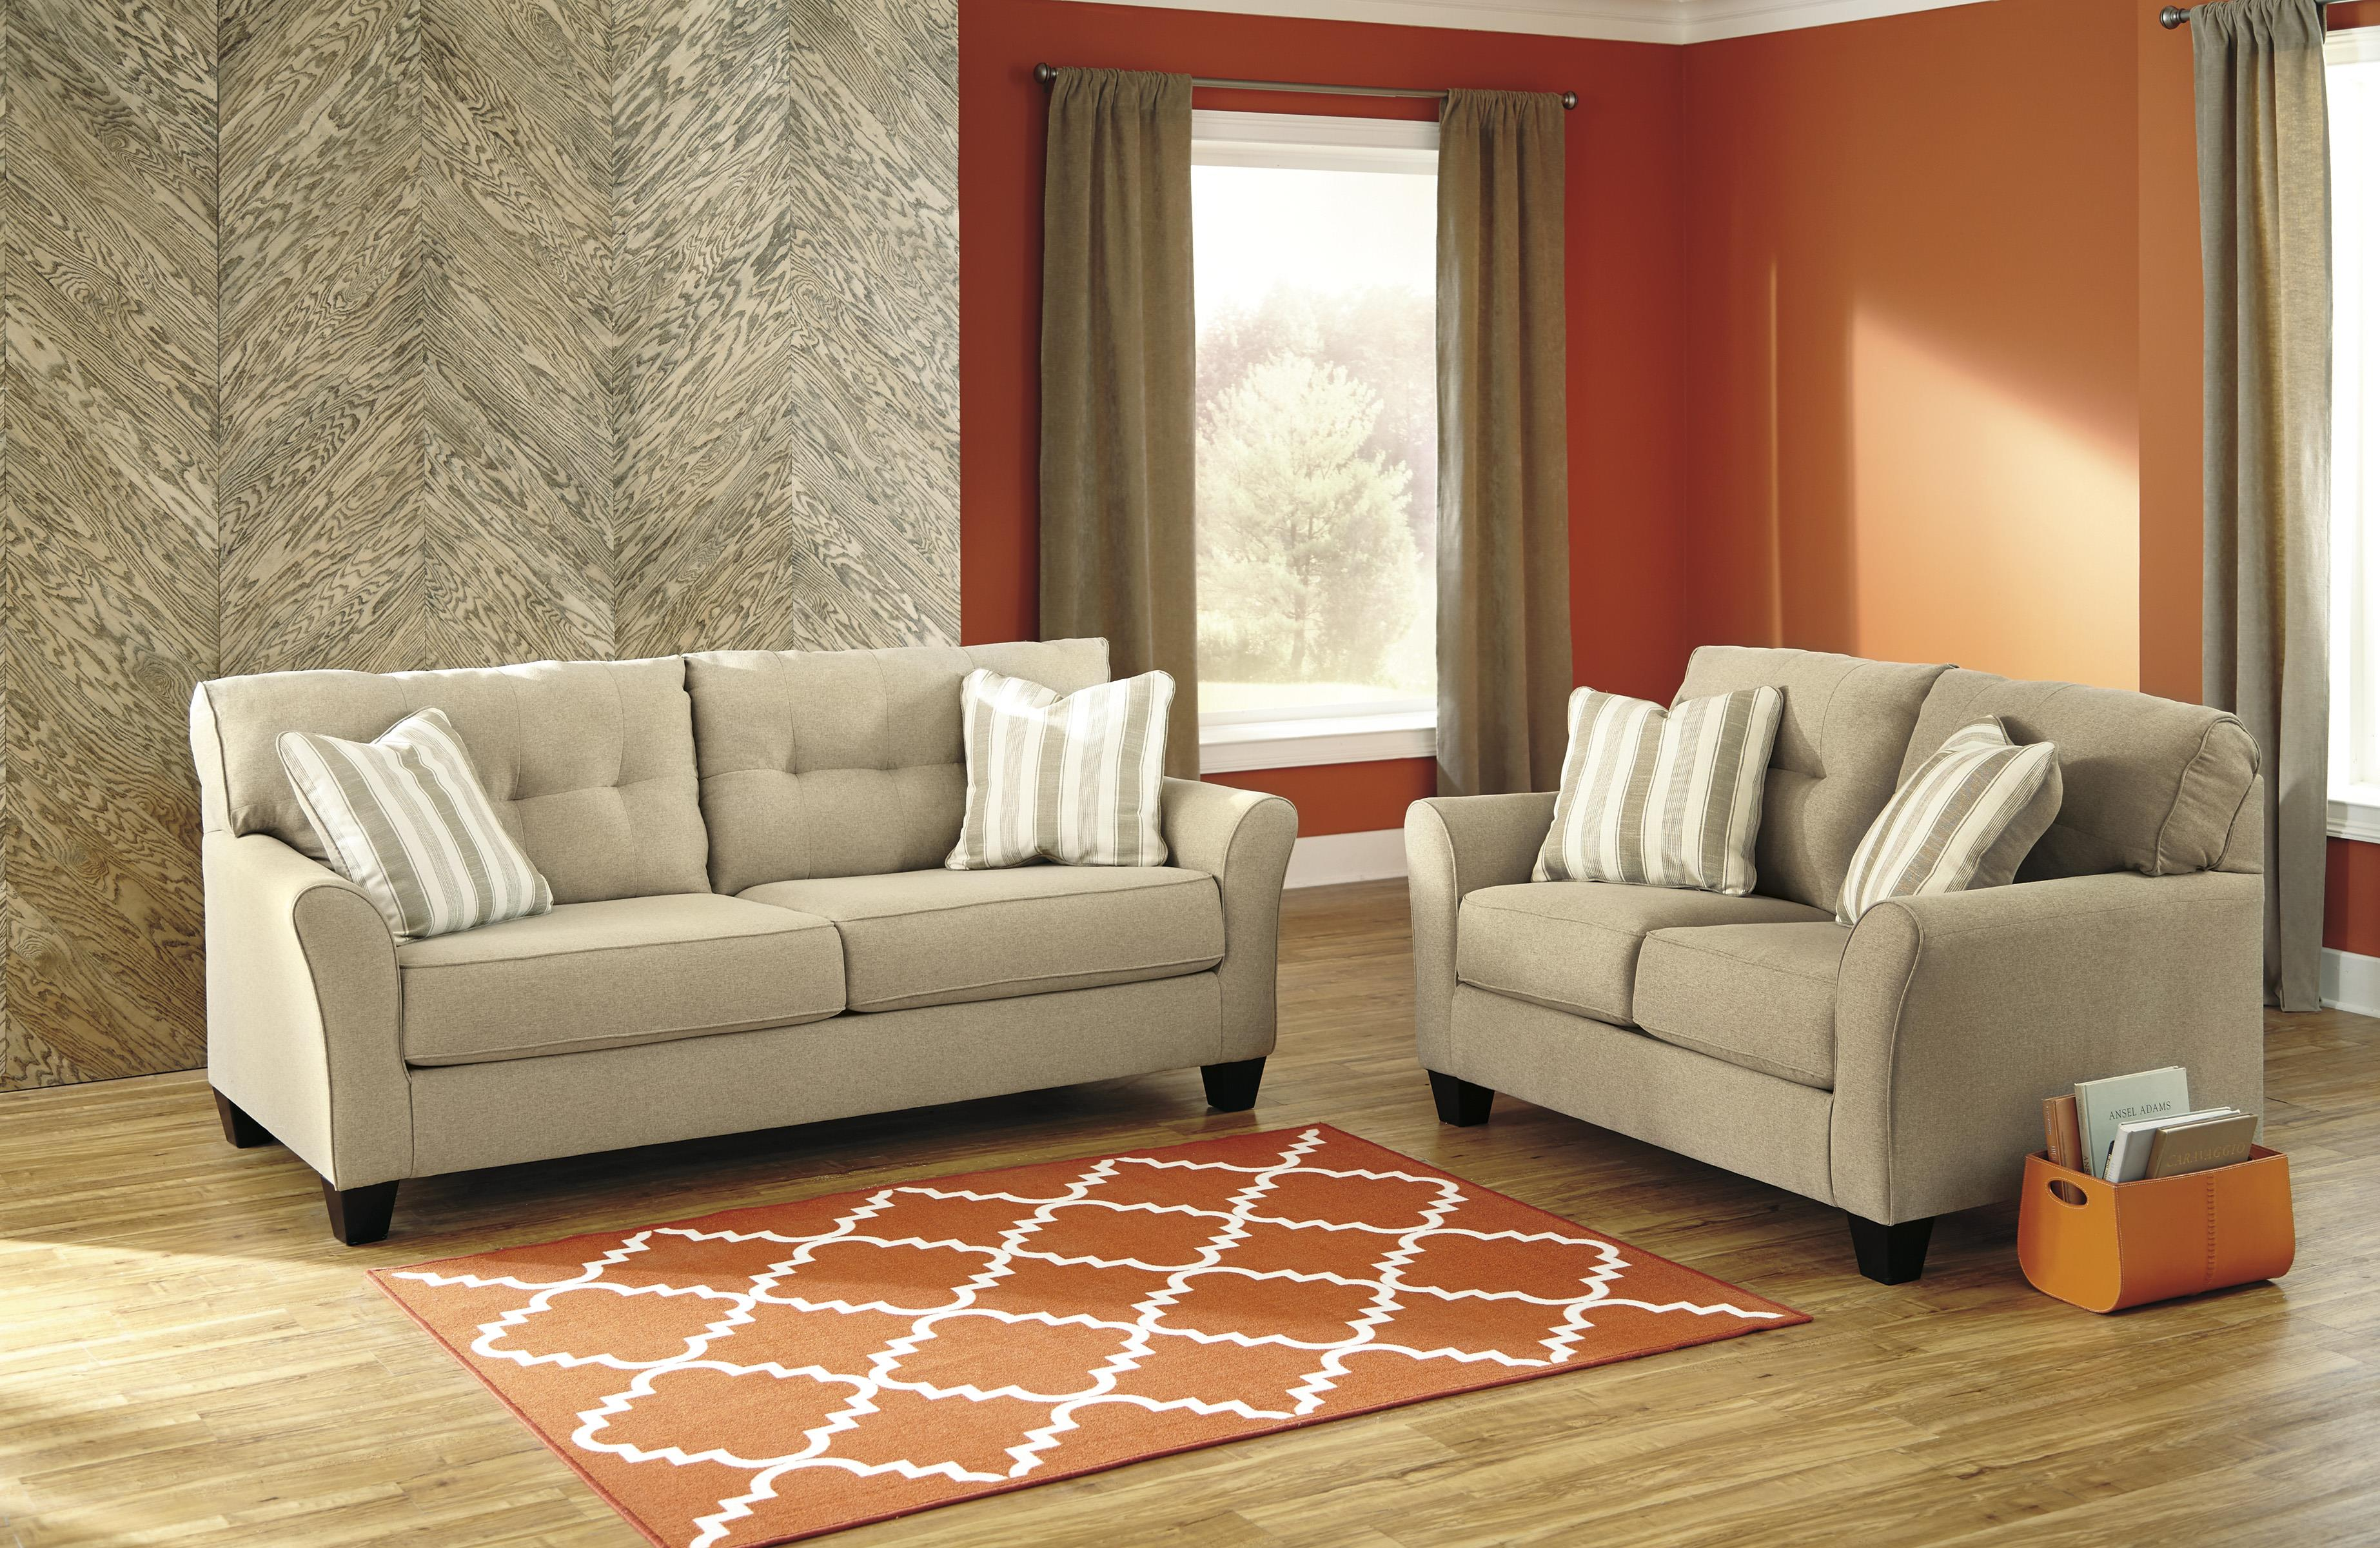 Benchcraft Laryn Stationary Living Room Group - Item Number: 51902 Living Room Group 1